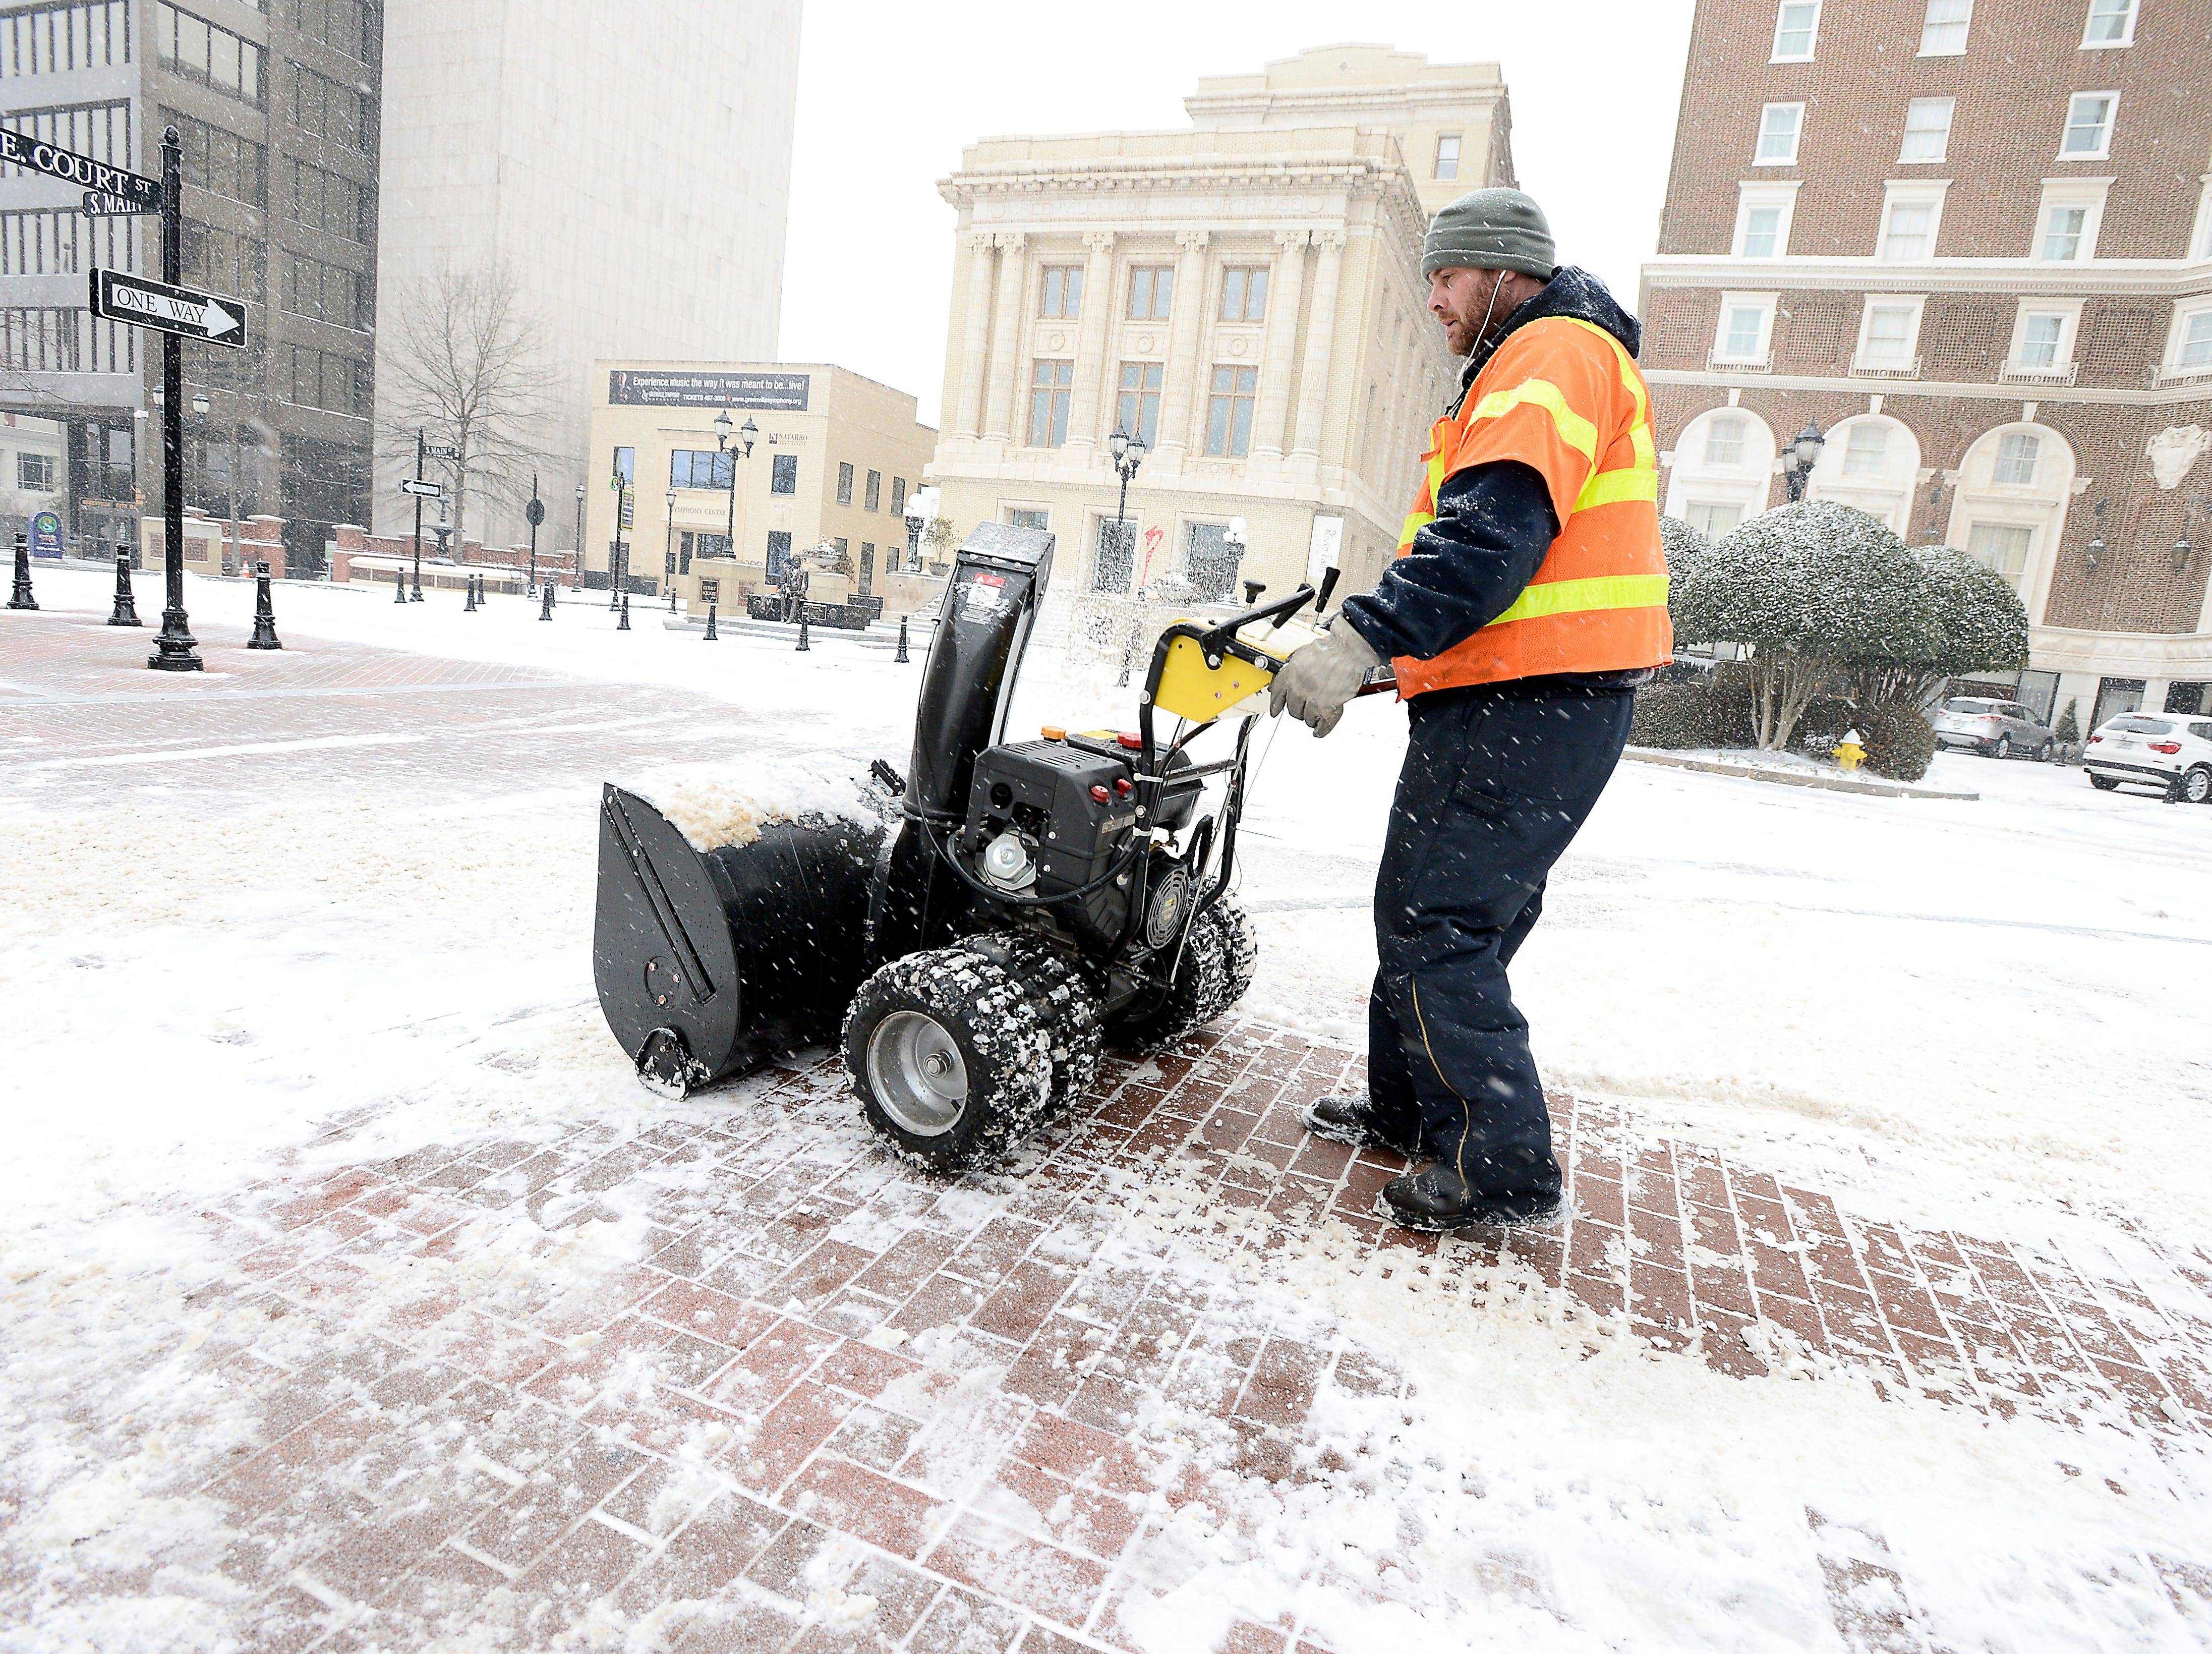 A City of Greenville worker uses a snow blower to remove snow from downtown sidewalks on Wednesday, February 12, 2014.